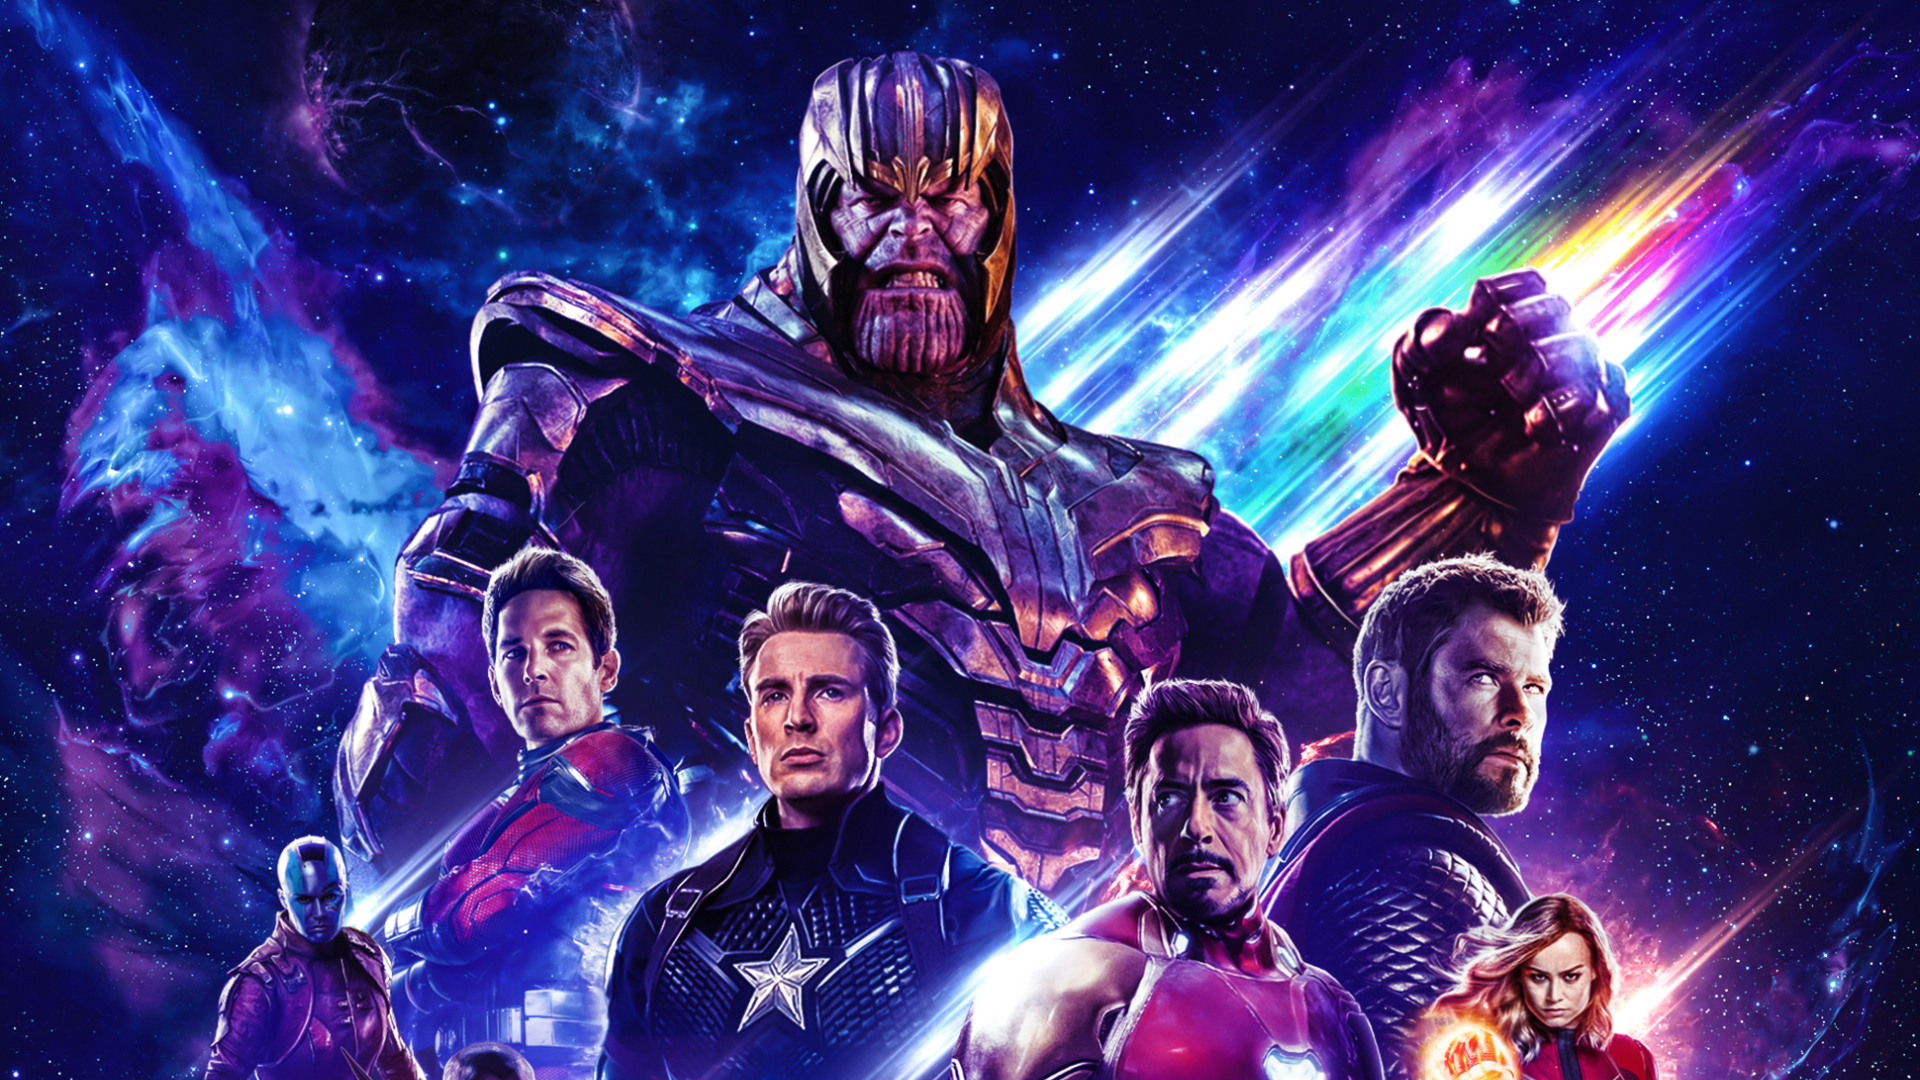 1920x1080 2019 Avengers Endgame Movie 1080p Laptop Full Hd